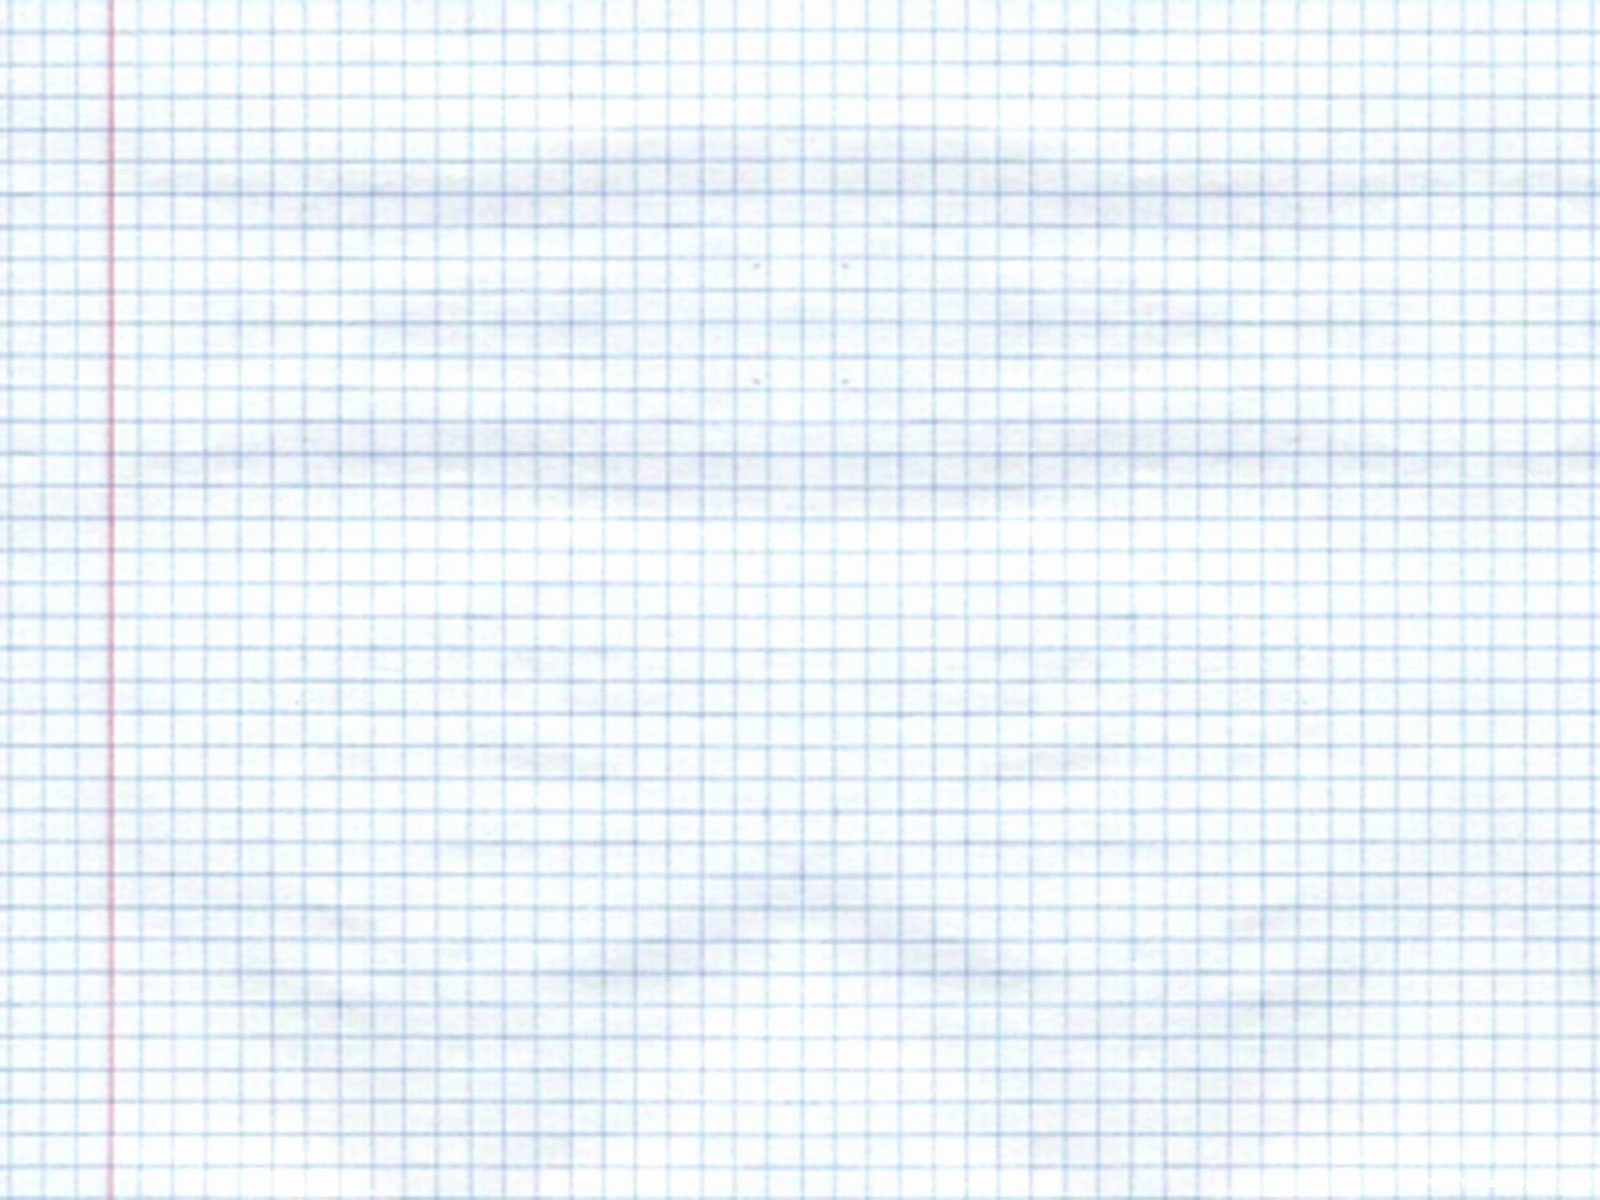 Notebook Paper Background for Powerpoint Luxury Blank Squared Notebook Paper Background – 1001 Christian